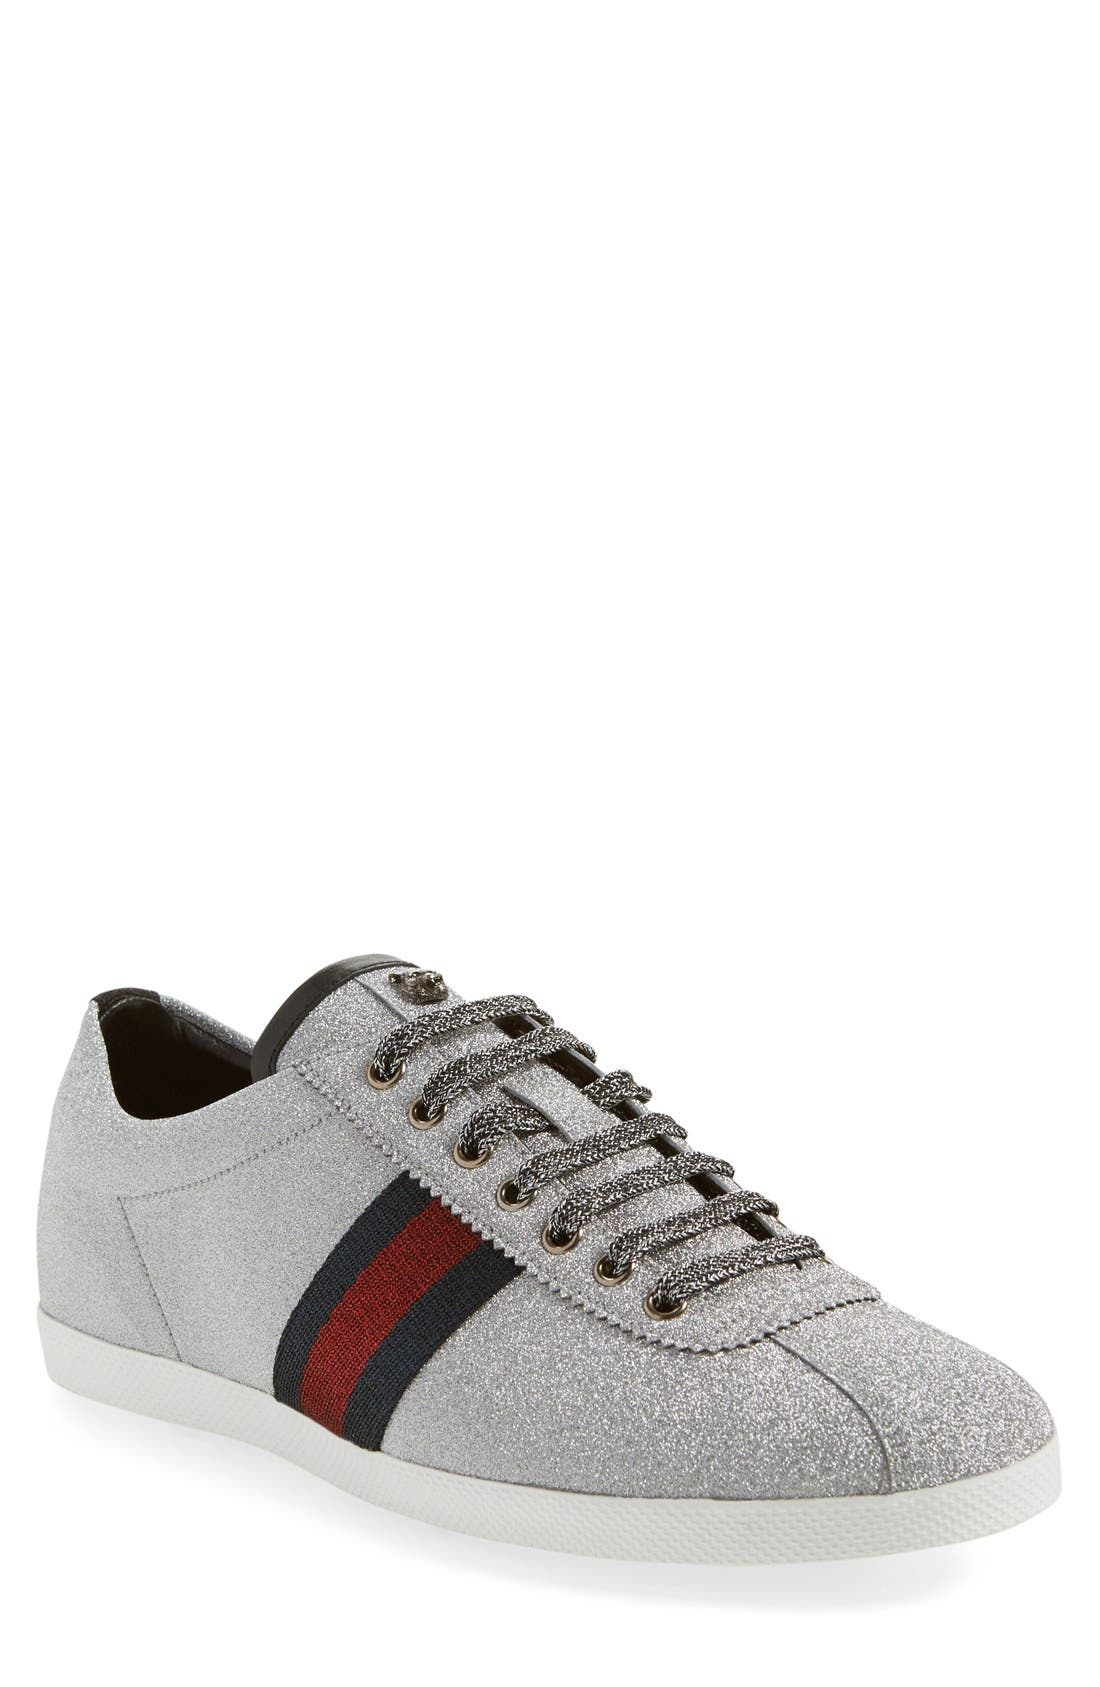 Bambi Lace-Up Sneaker,                         Main,                         color, ARGENTO FABRIC